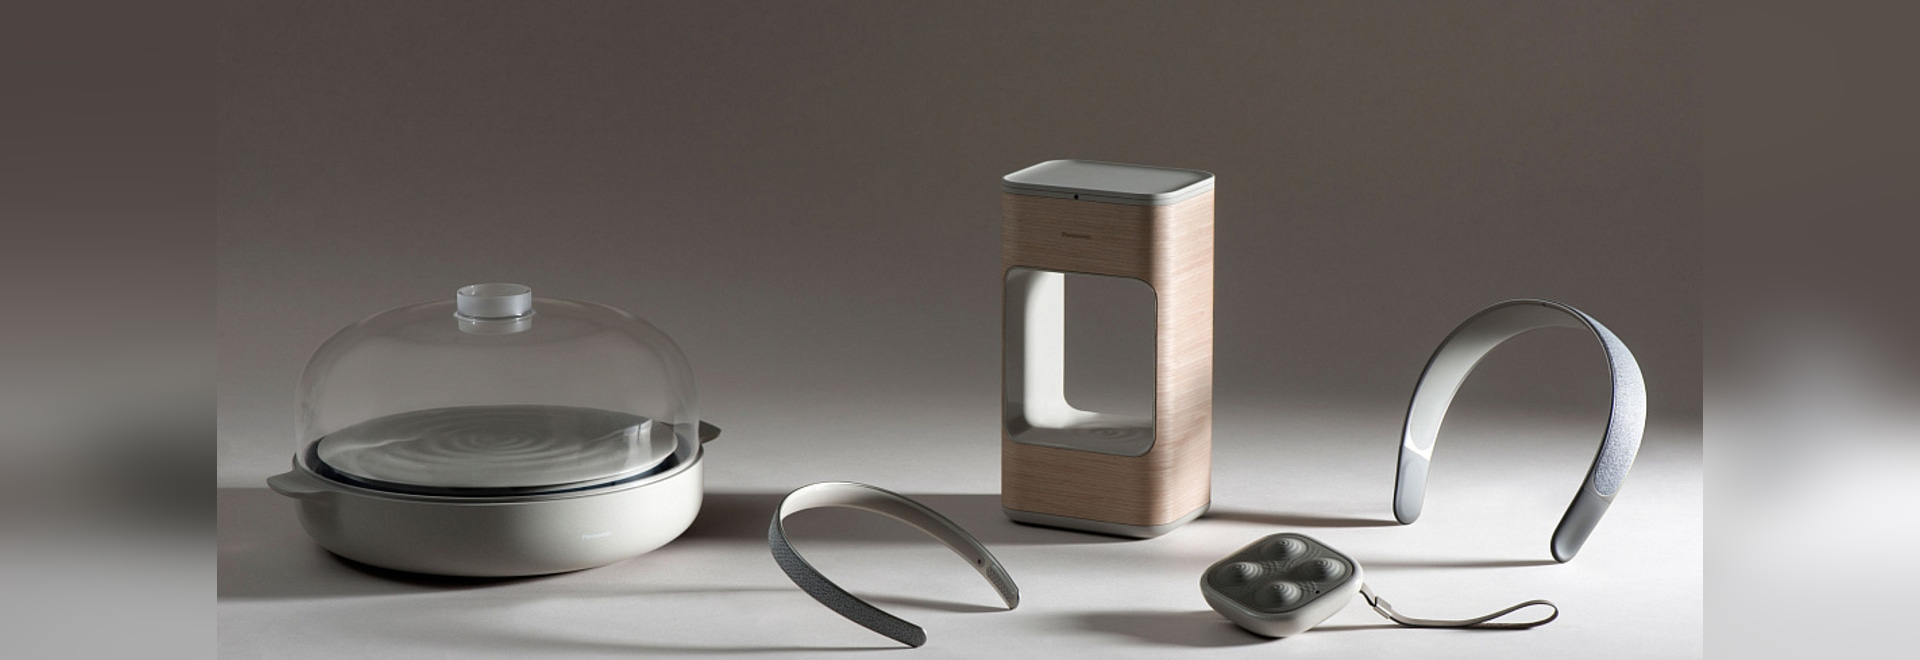 Layer Designs Smart Objects to Benefit Health